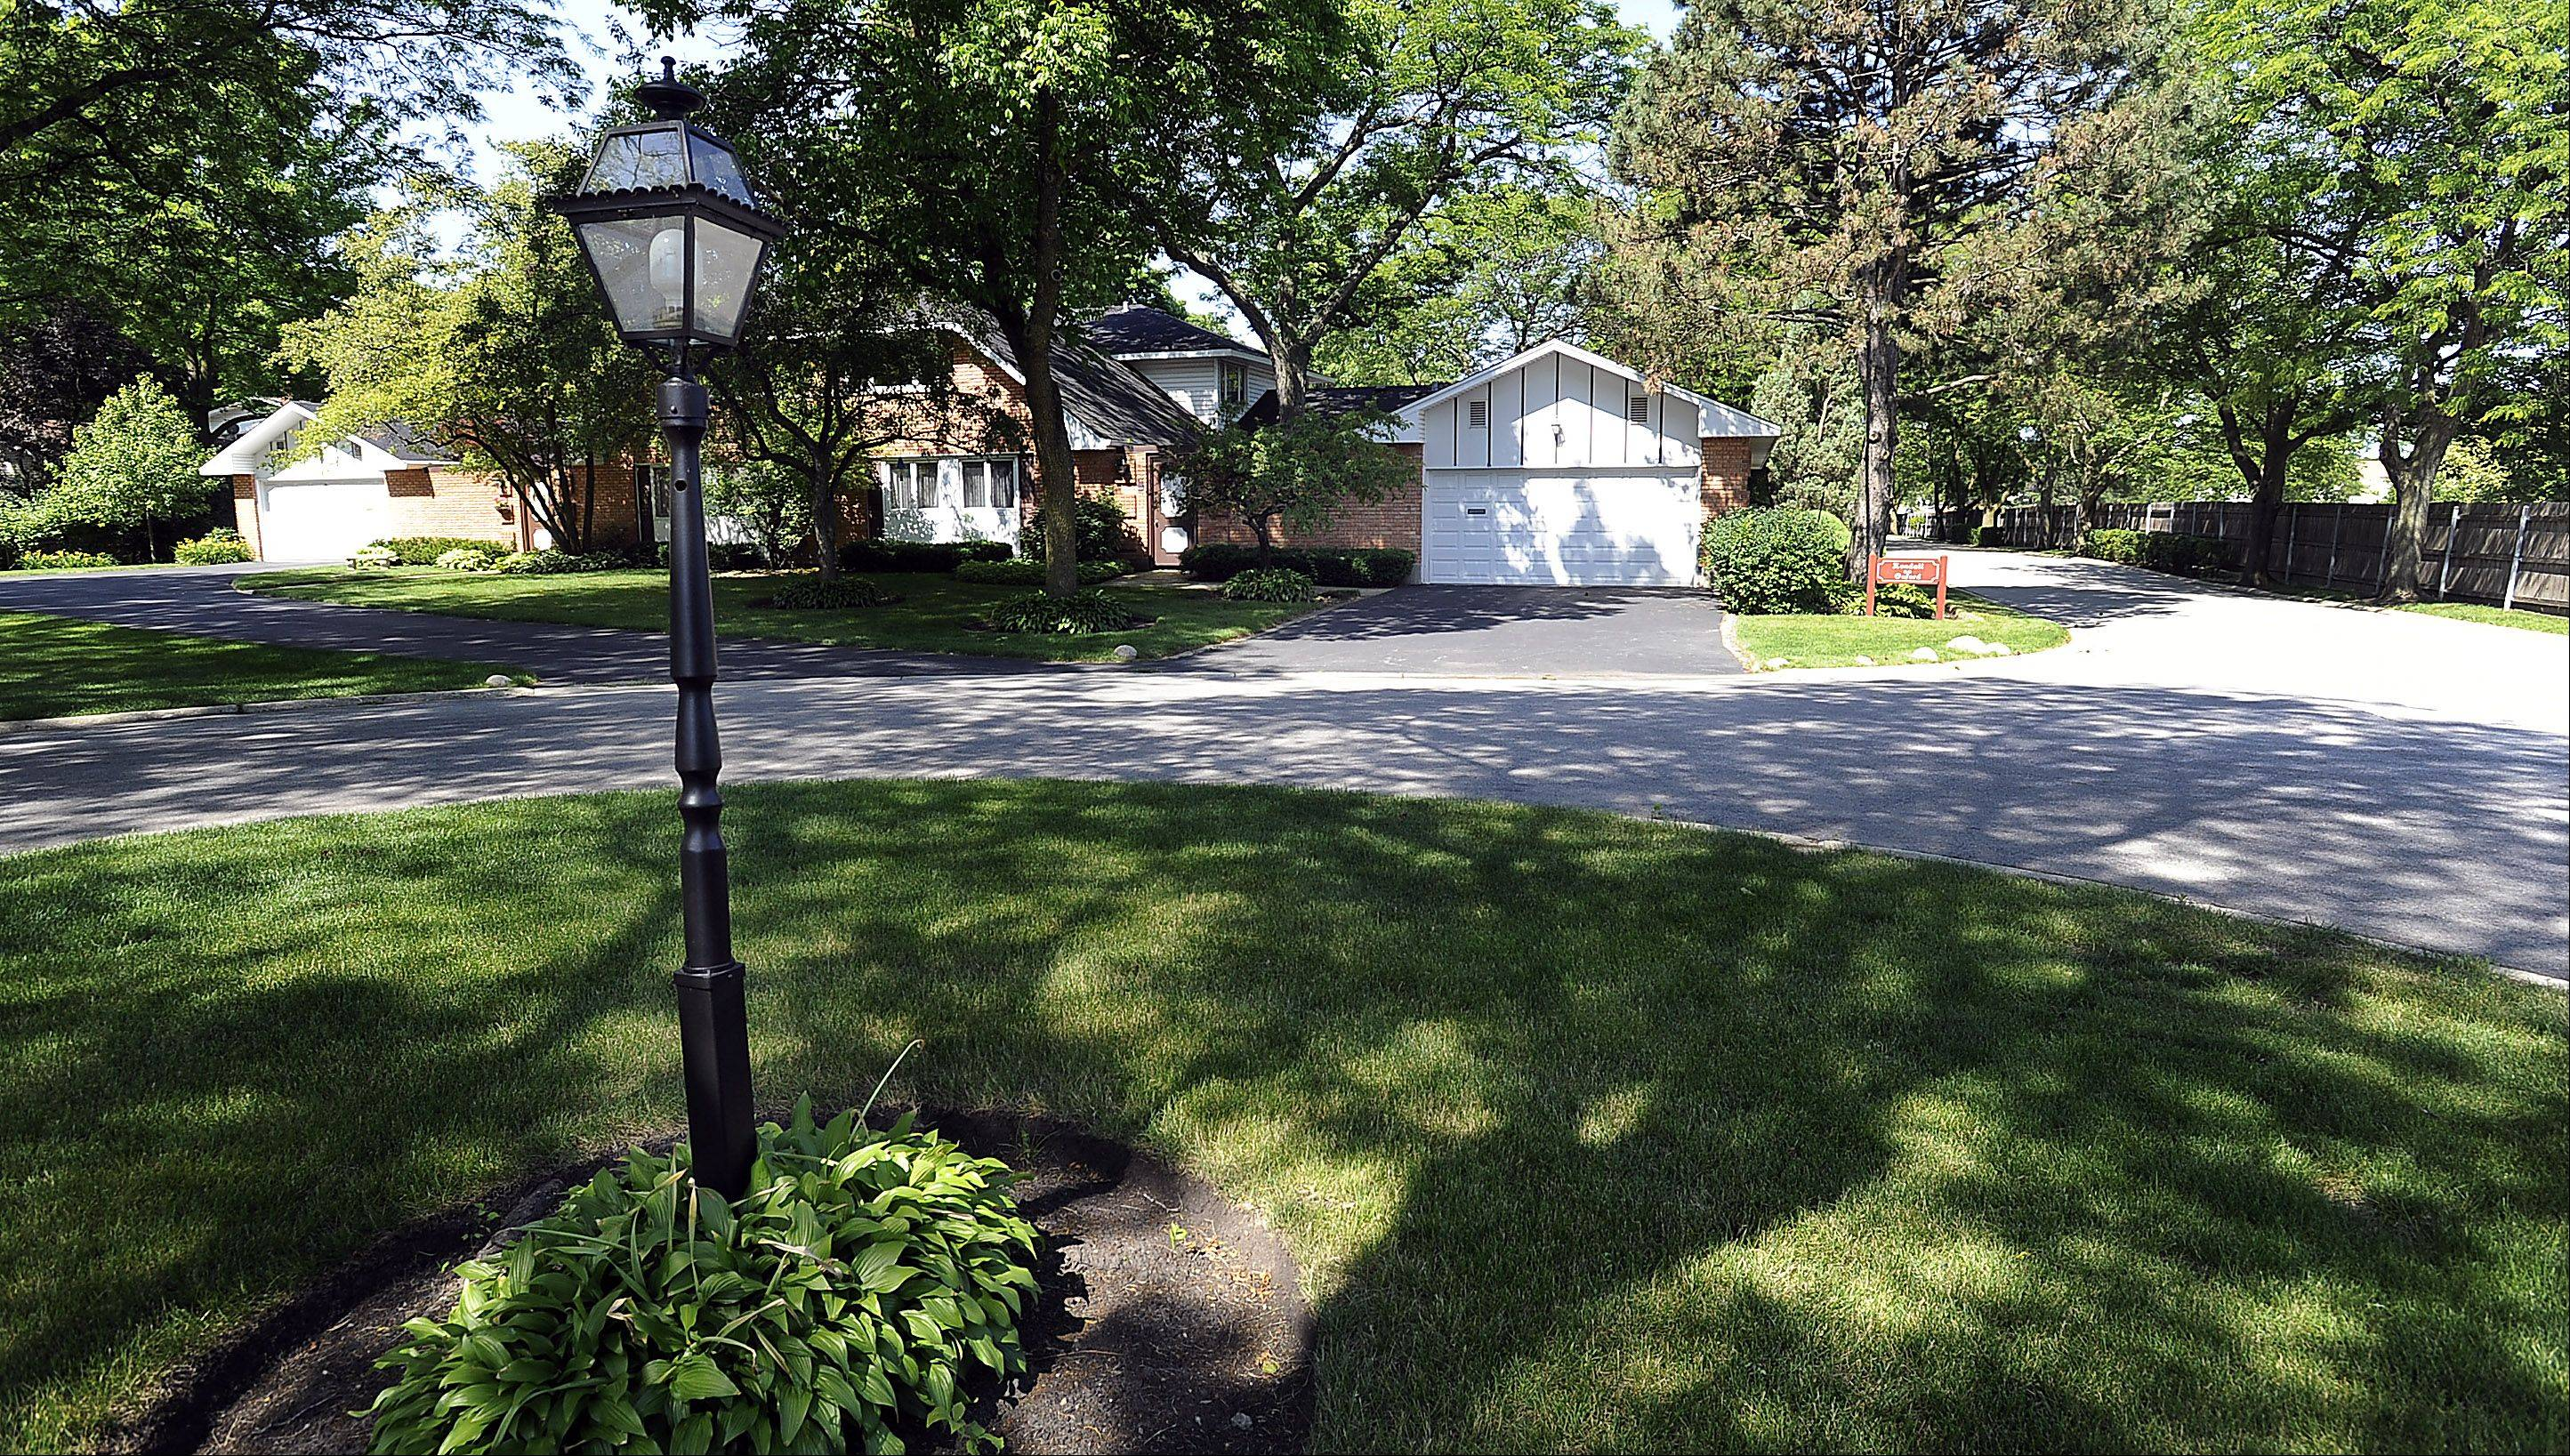 Rolling Meadows' Plum Grove Village neighborhood is reminiscent of an old English town, with street names like Kendall on Oxford.